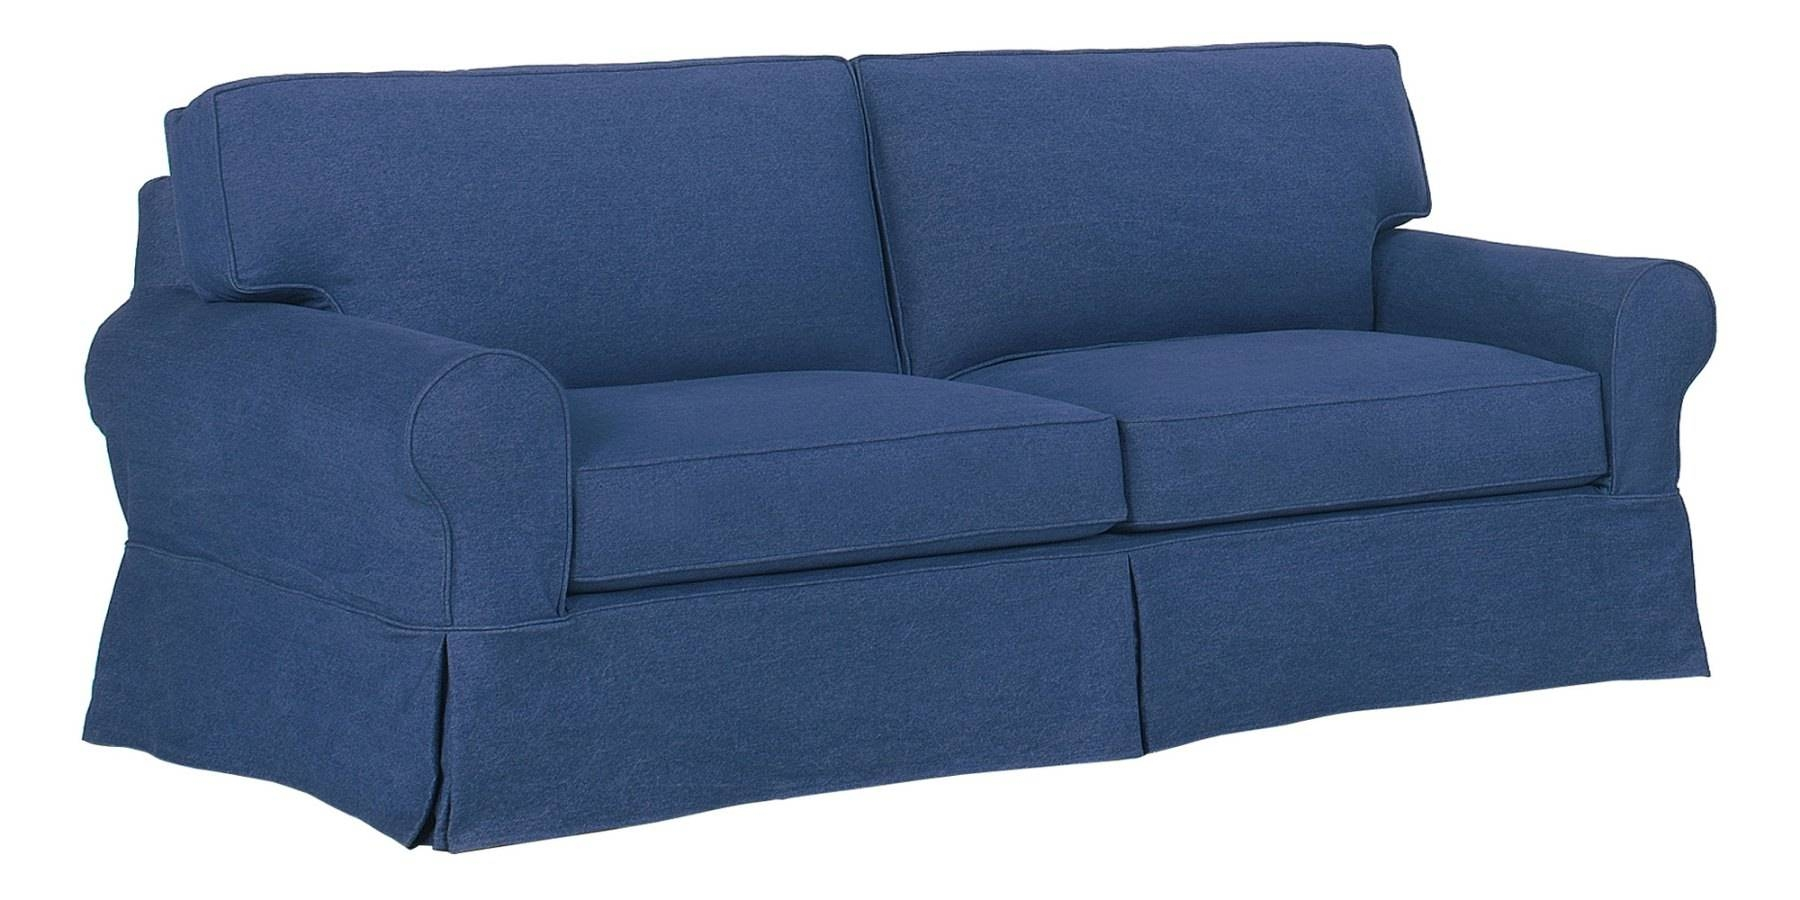 Denim Slipcovered Sofa With Chaise & Ottoman | Club Furniture with Denim Sofas and Loveseats (Image 5 of 15)